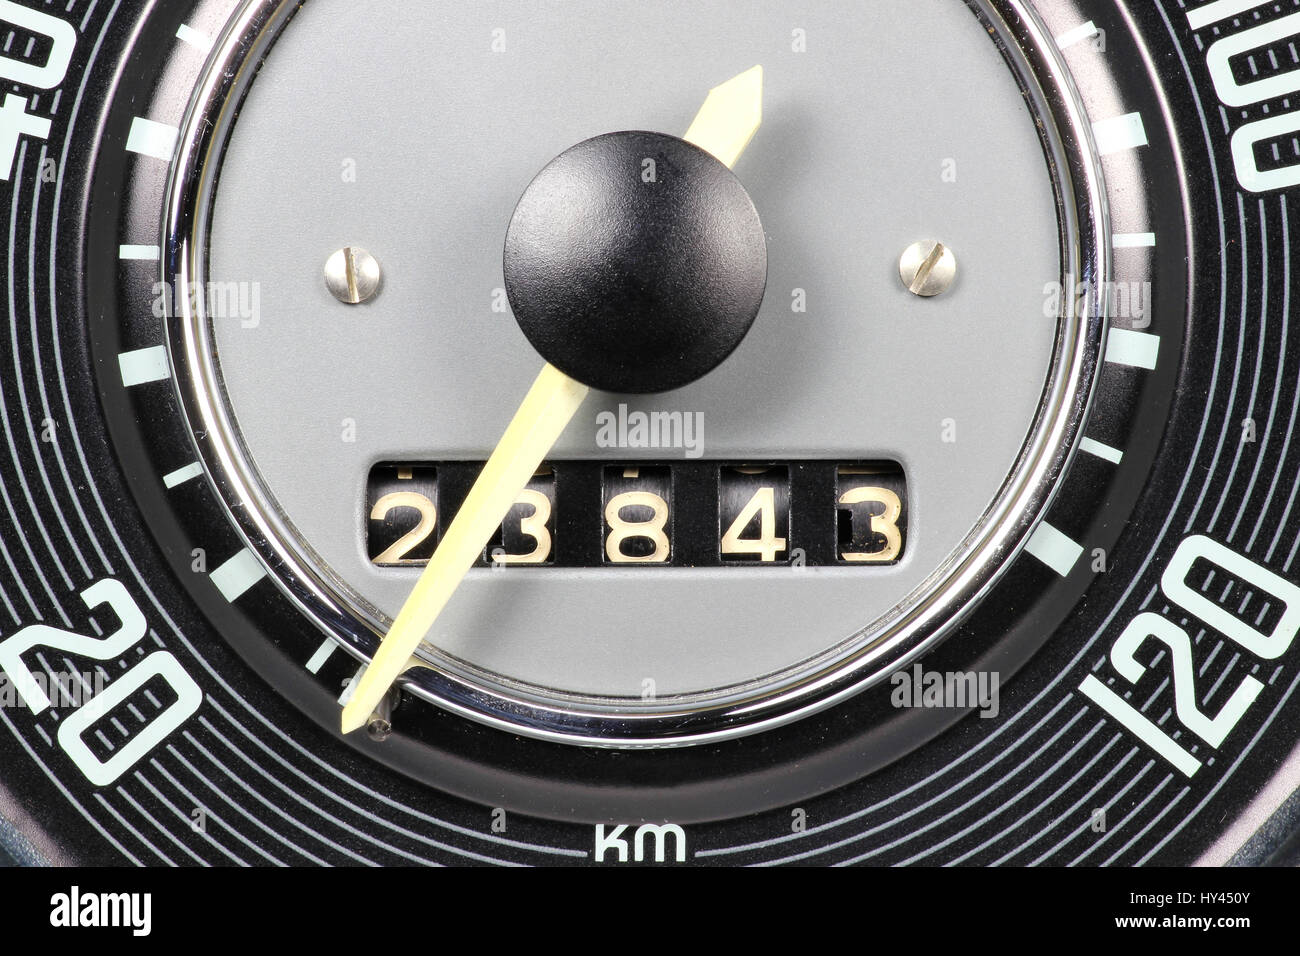 speedometer and odometer of a classic car - Stock Image